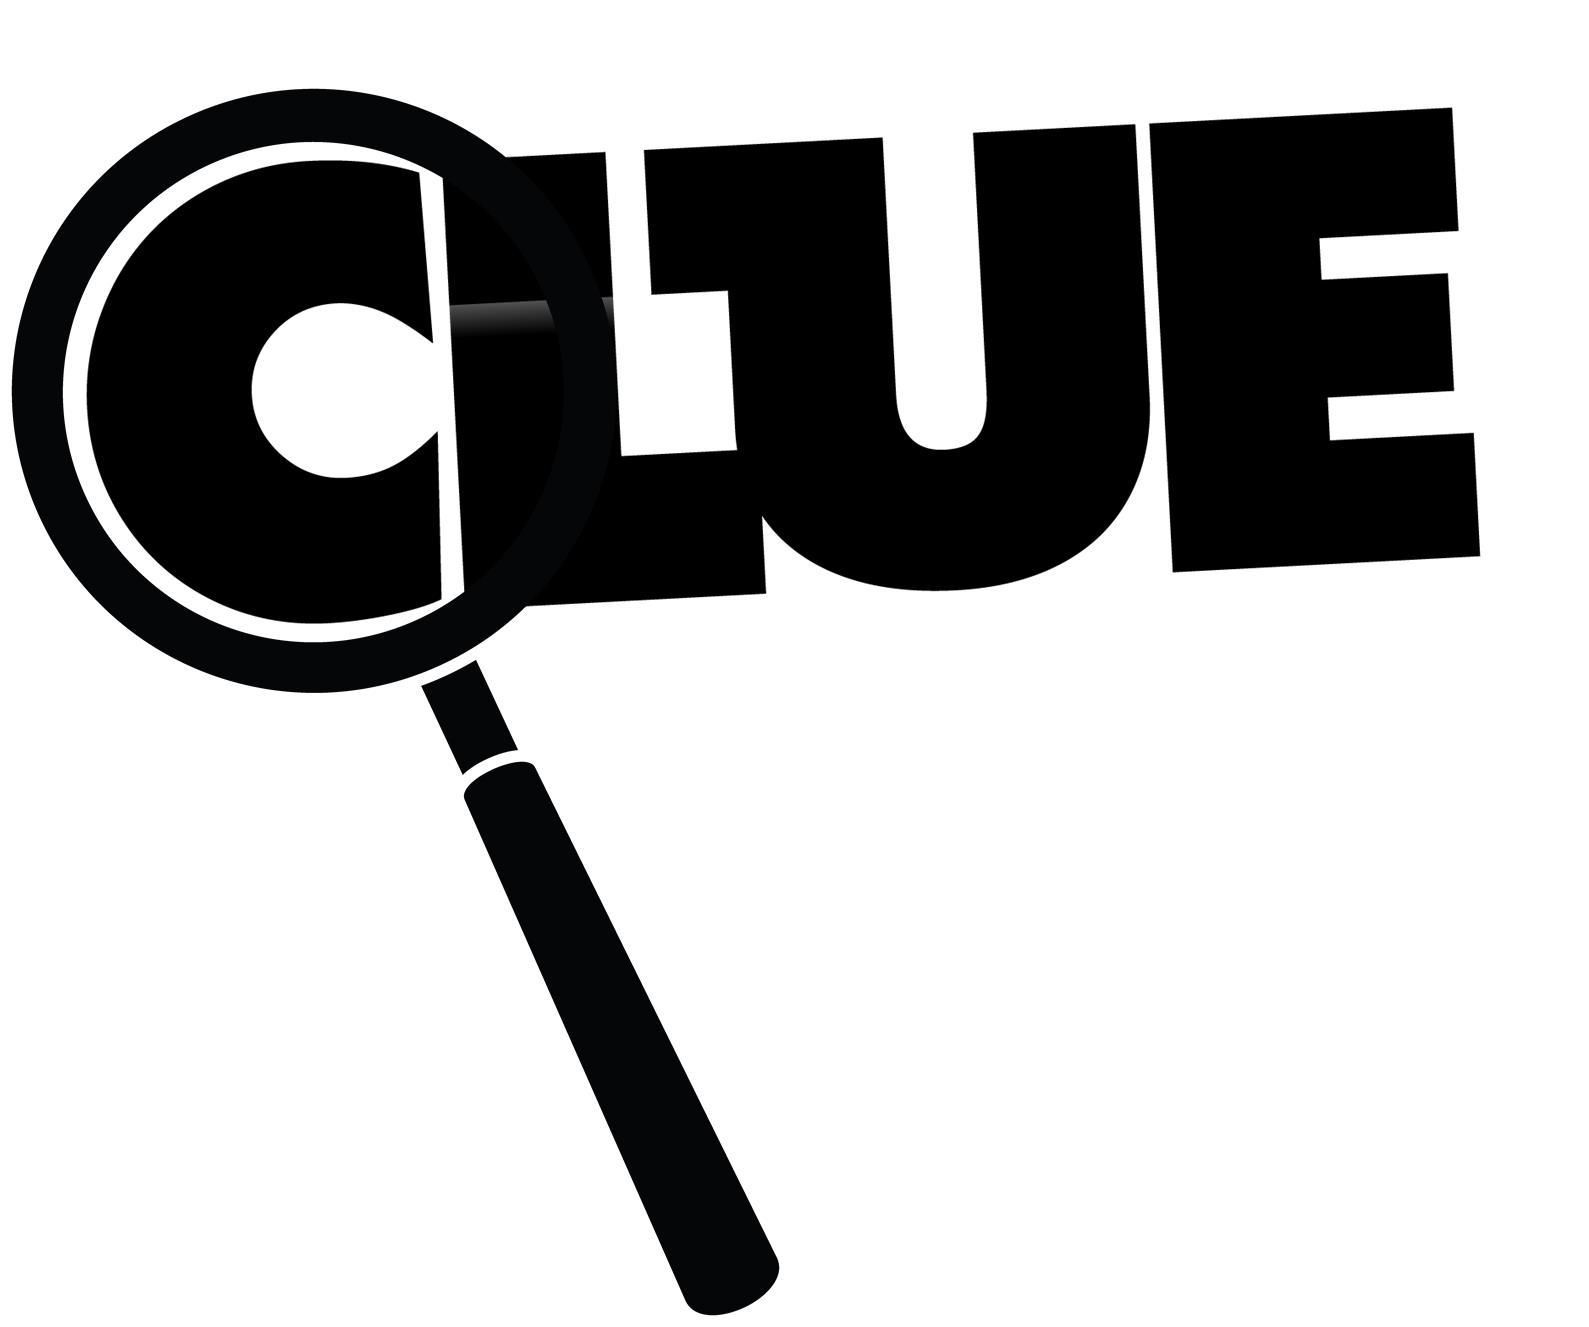 clue board game coloring pages   Clue board game characters clipart - AbeonCliparts ...